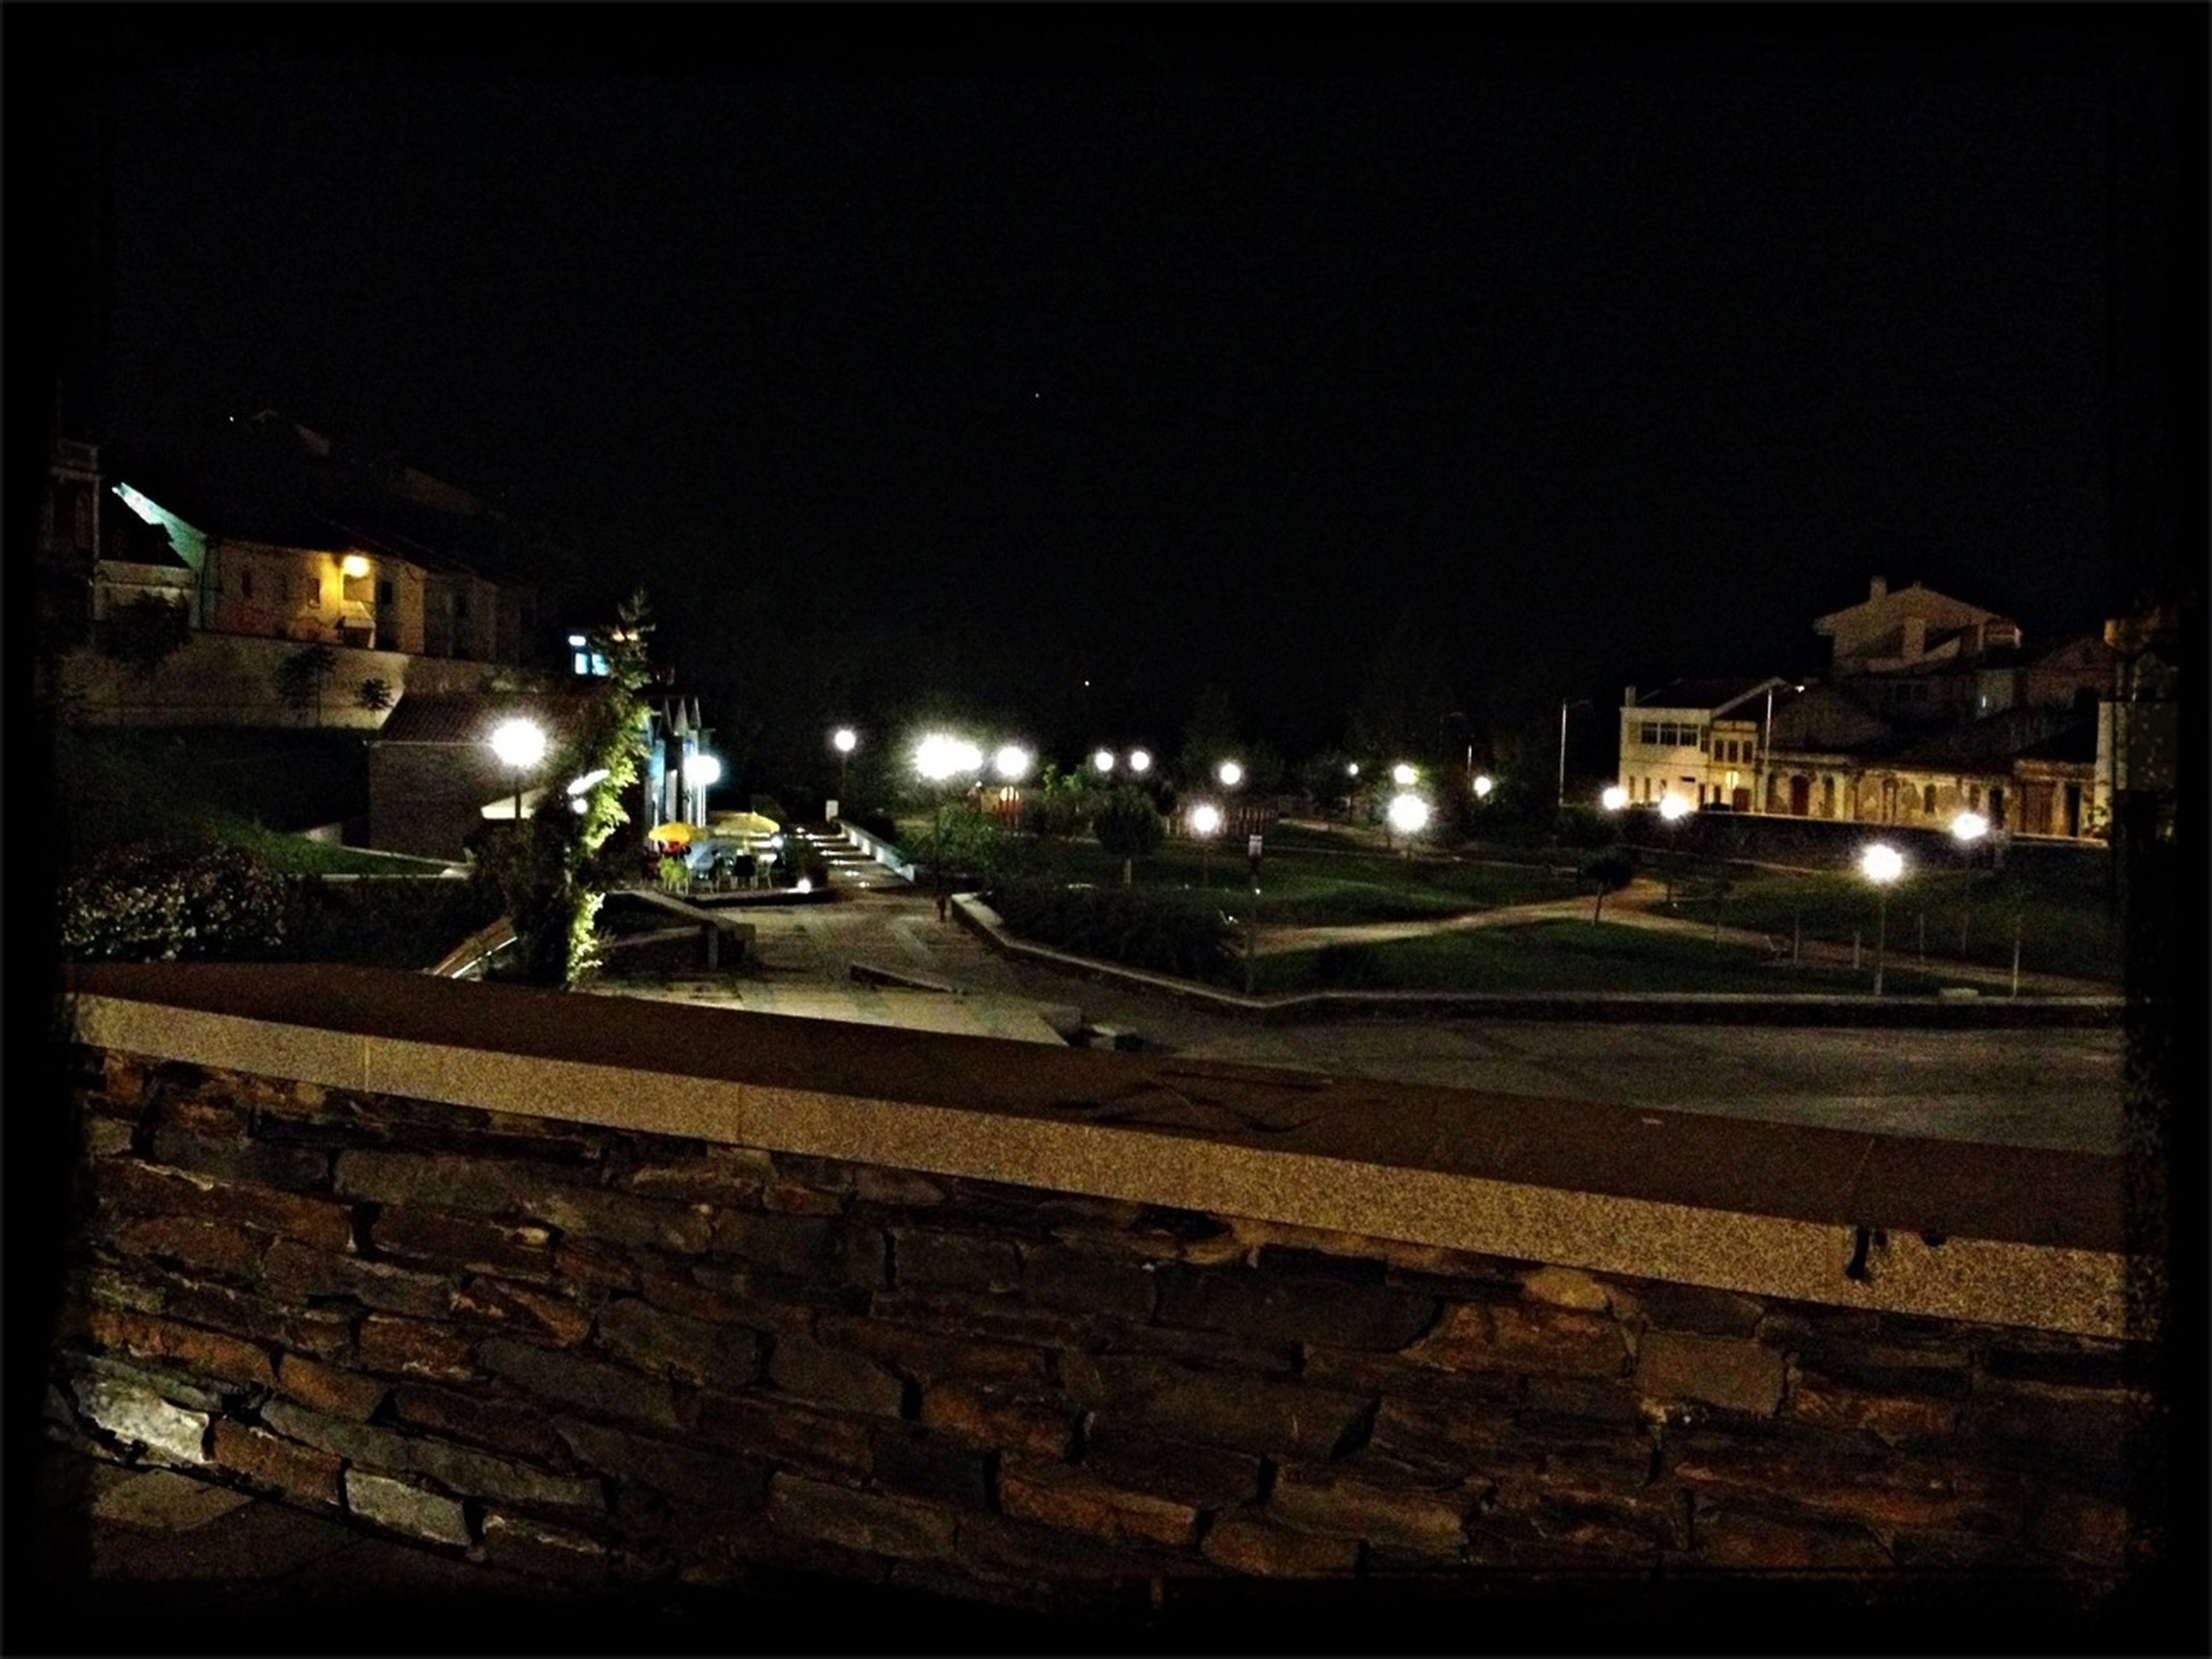 night, illuminated, building exterior, built structure, architecture, street light, lighting equipment, clear sky, copy space, dark, house, street, outdoors, no people, sky, old, city, light - natural phenomenon, residential structure, residential building